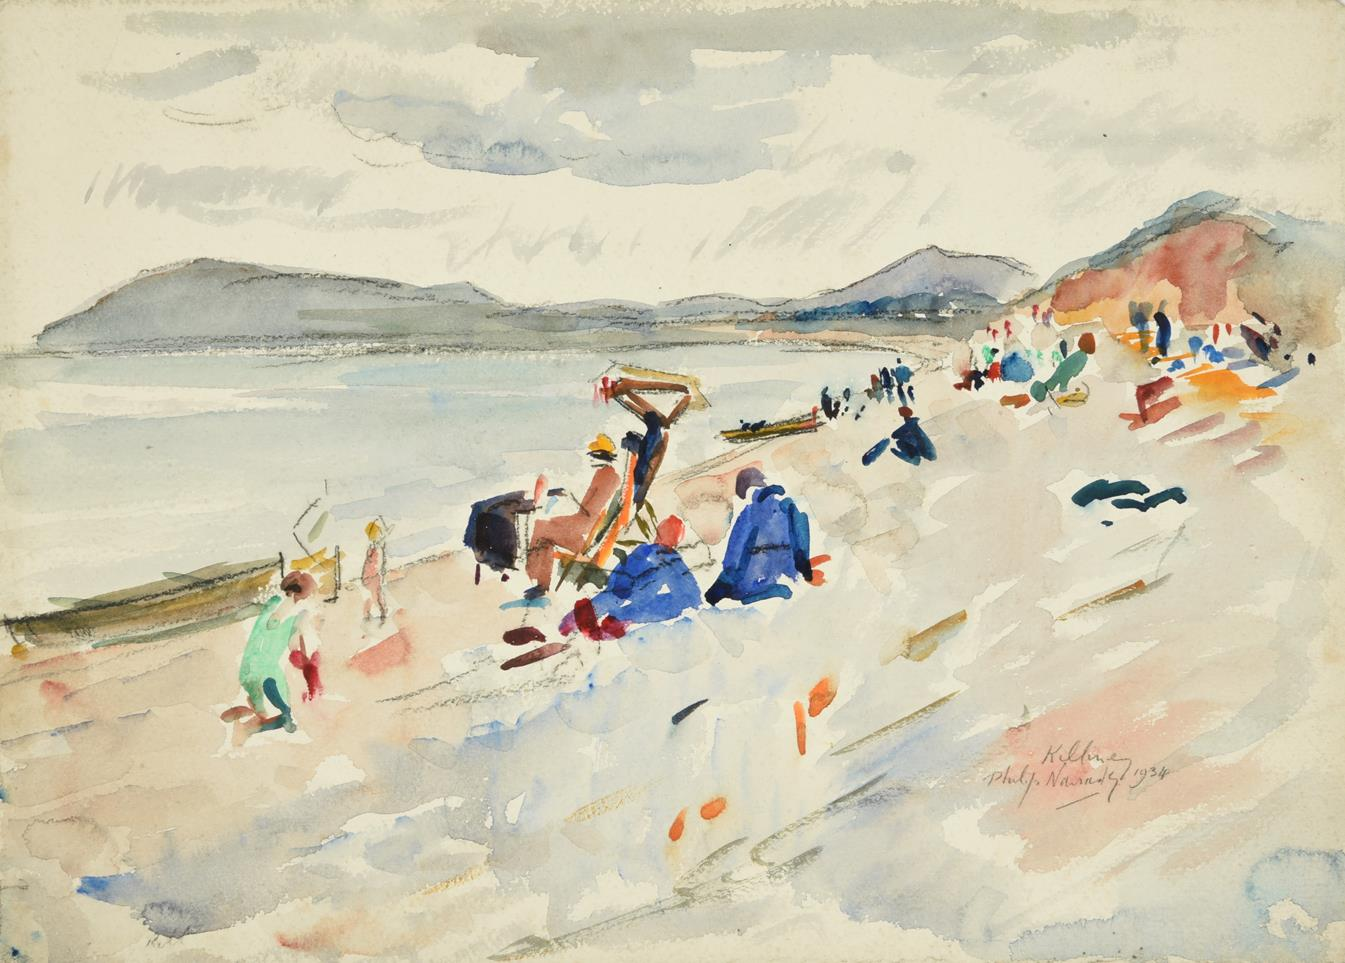 Philip Naviasky (1894-1983) ''Killiney'', Ireland Signed, inscribed and dated 1934, pencil and